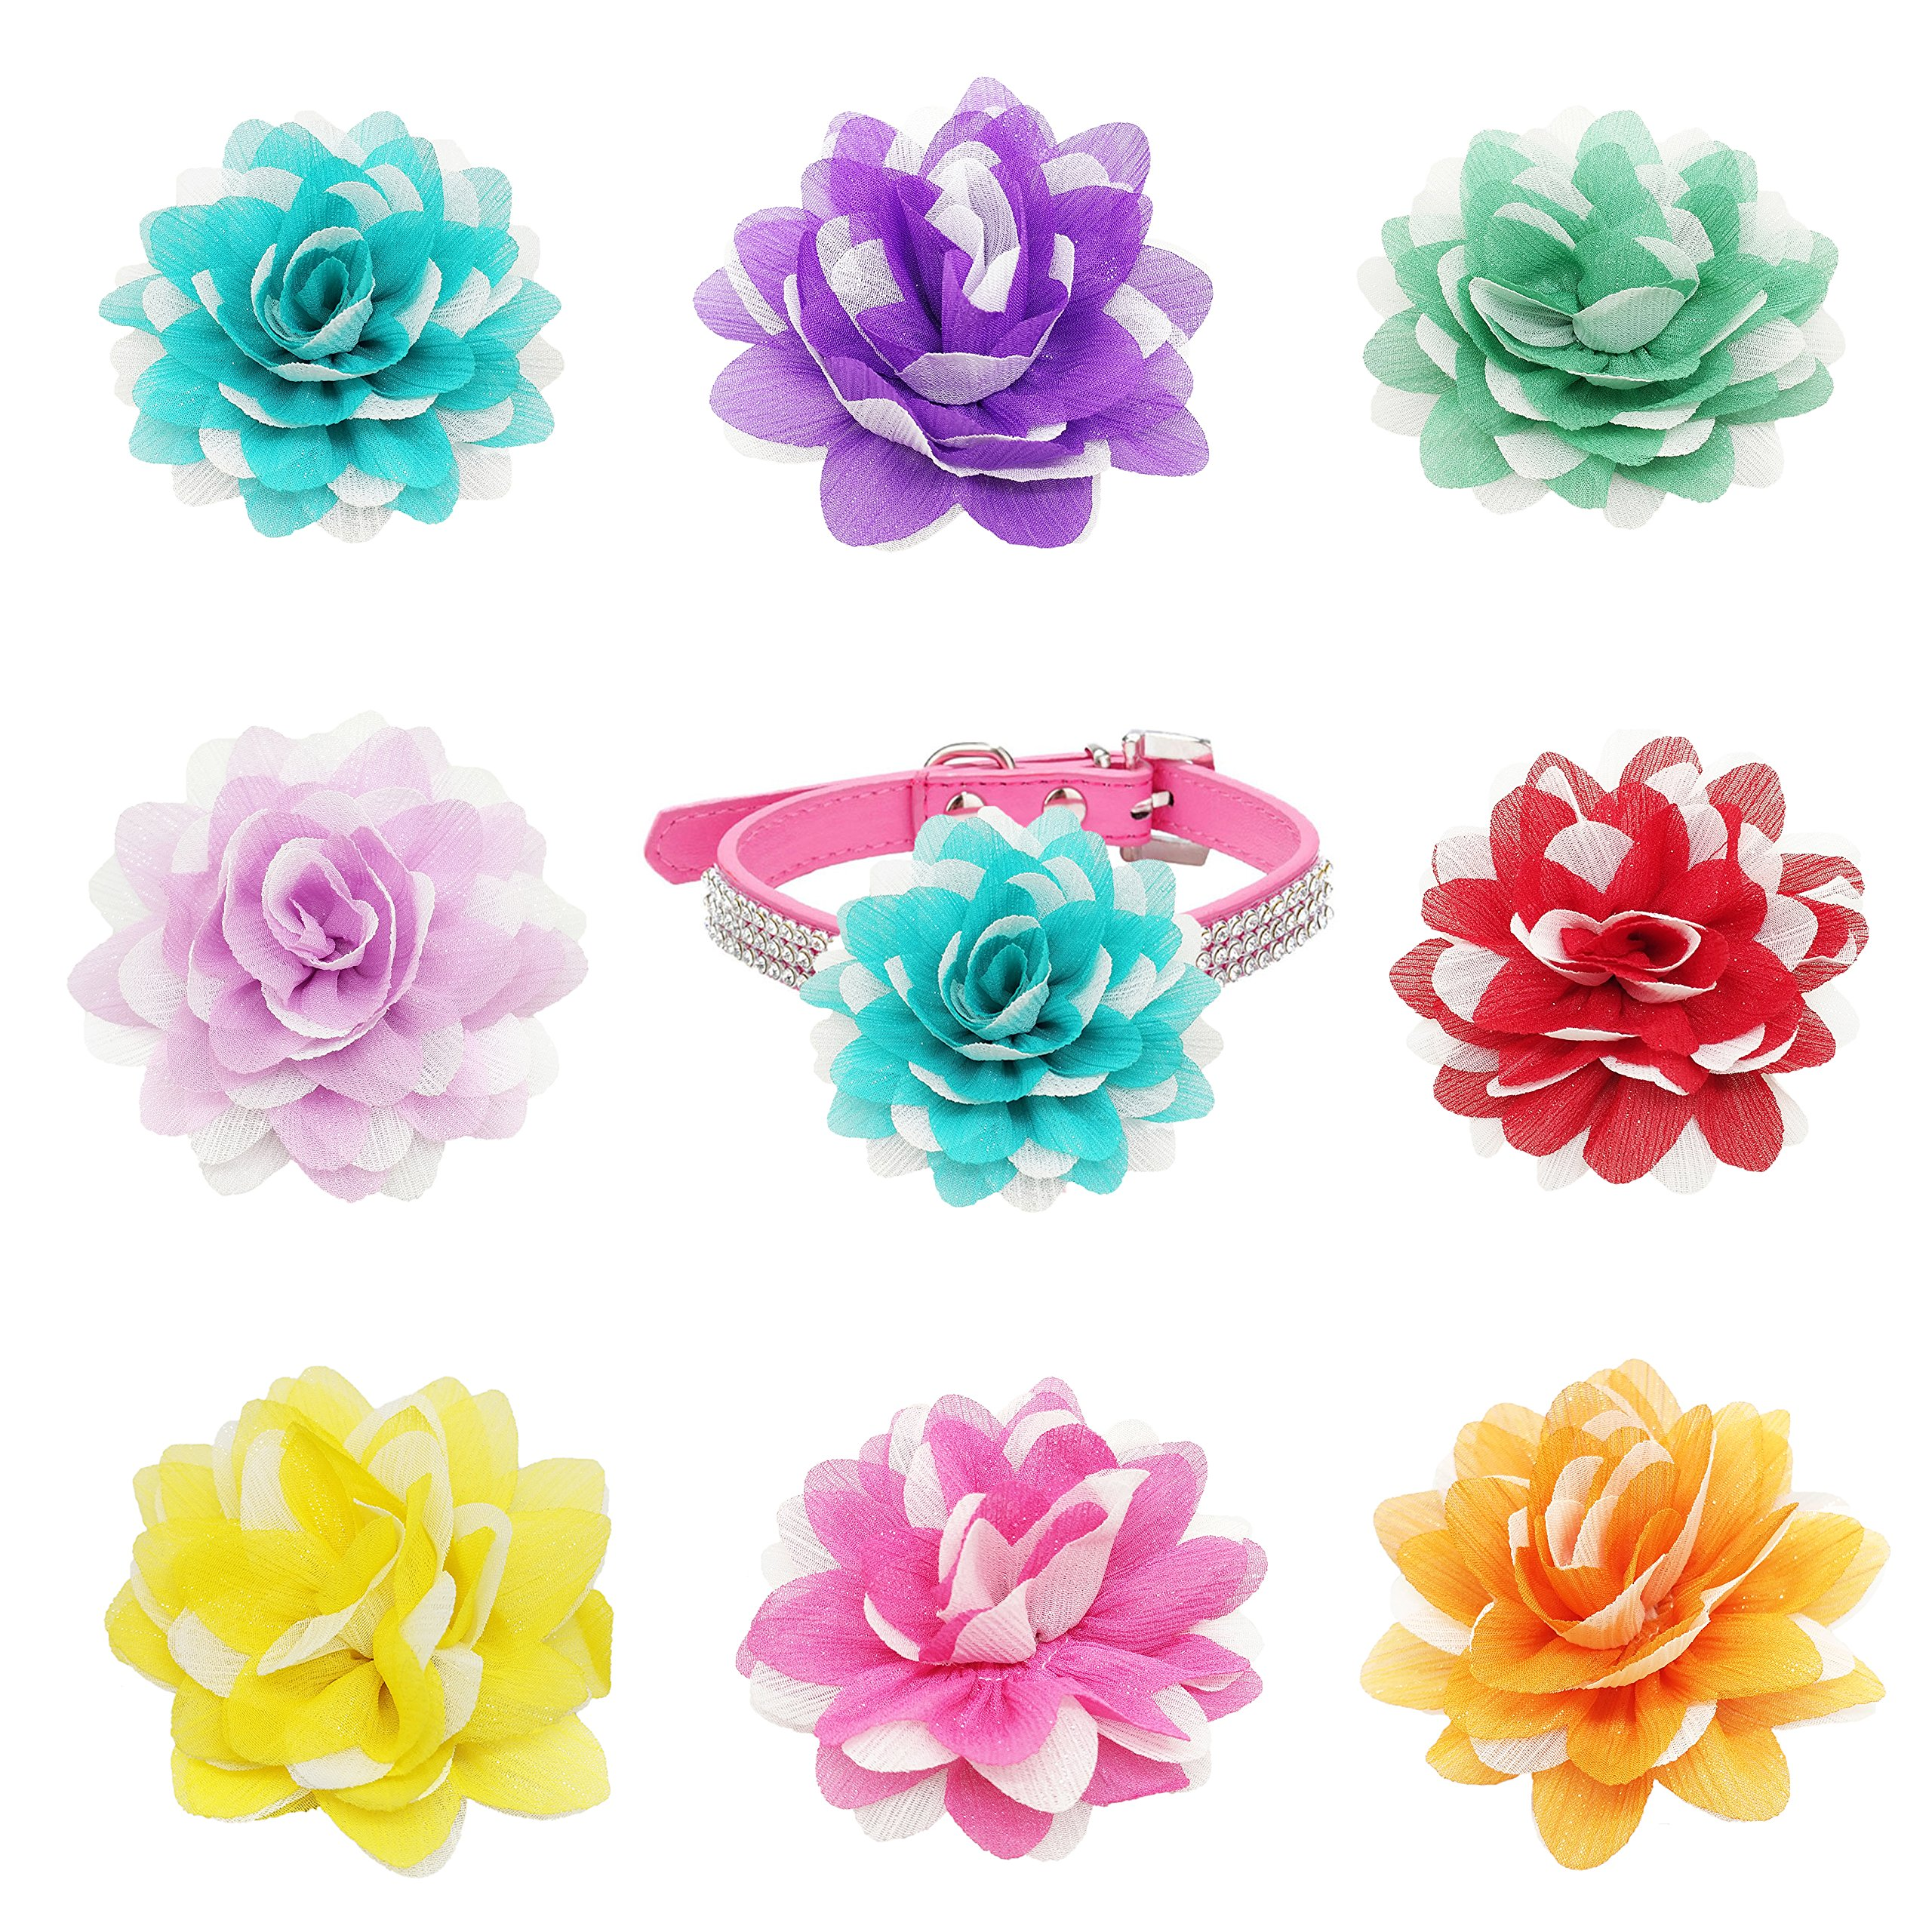 PET SHOW 3'' Dog Collar Charms Chiffon Flower Accessories for Cat Puppy Collars Dogs Bowtie Custome Pack of 8 by PET SHOW